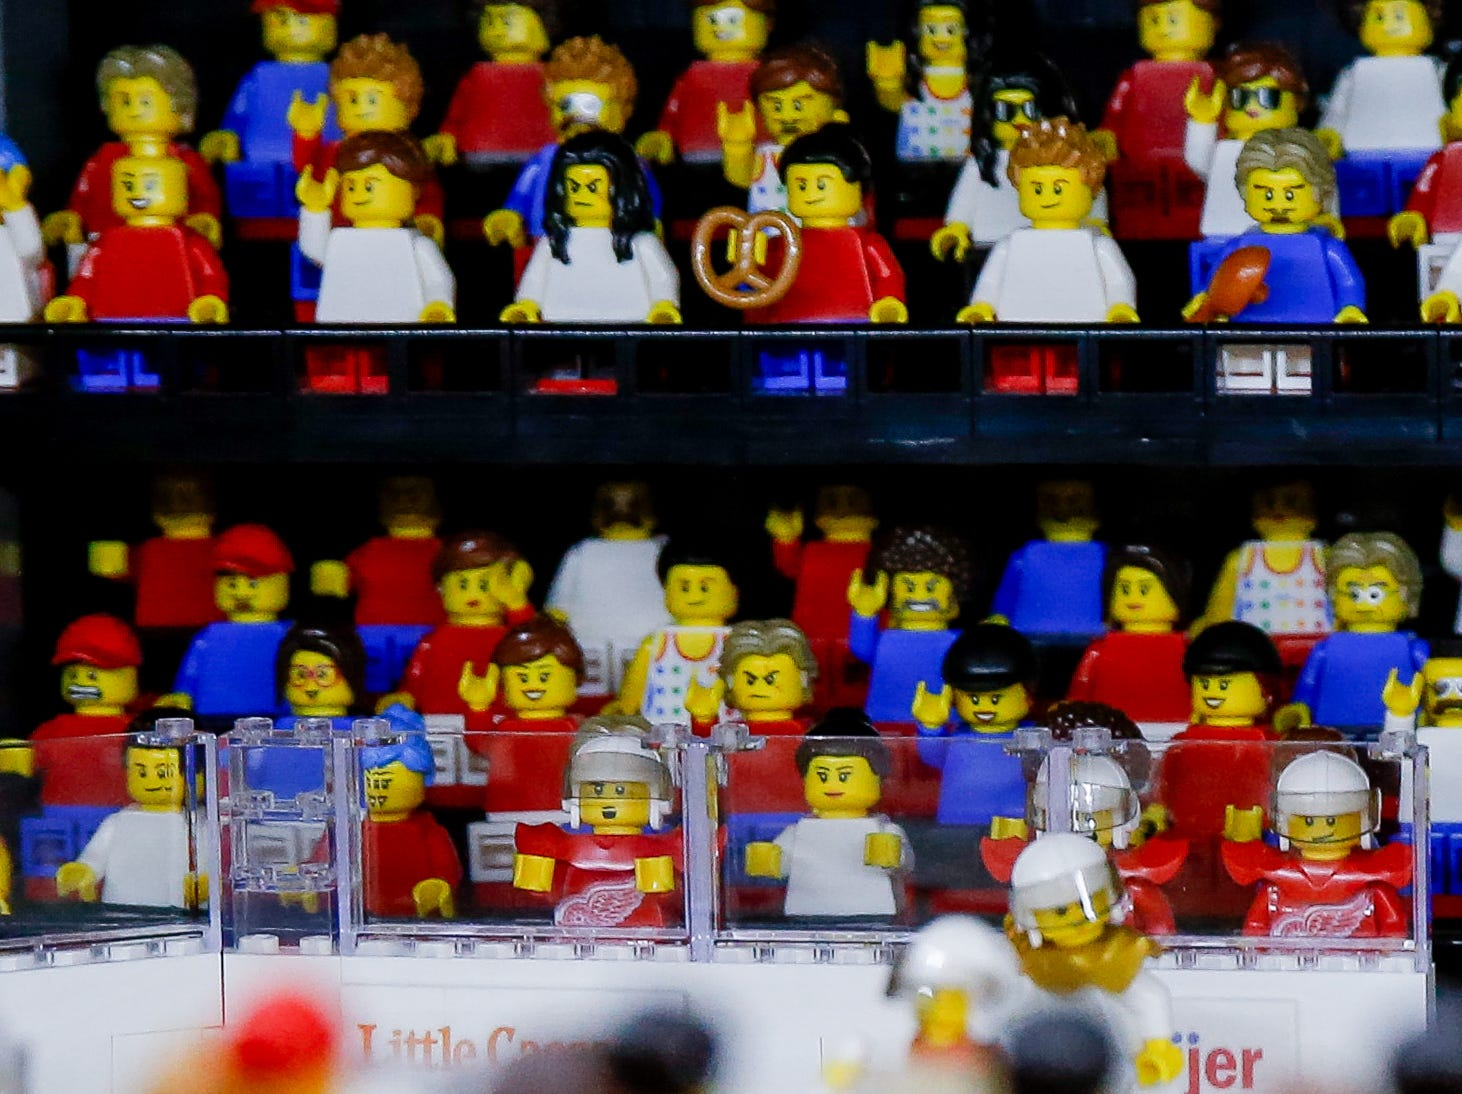 Tiny Detroit Red Wings mini-figures sit on the bench, perhaps waiting for a LEGO Jeff Blashill to insert them into the game.